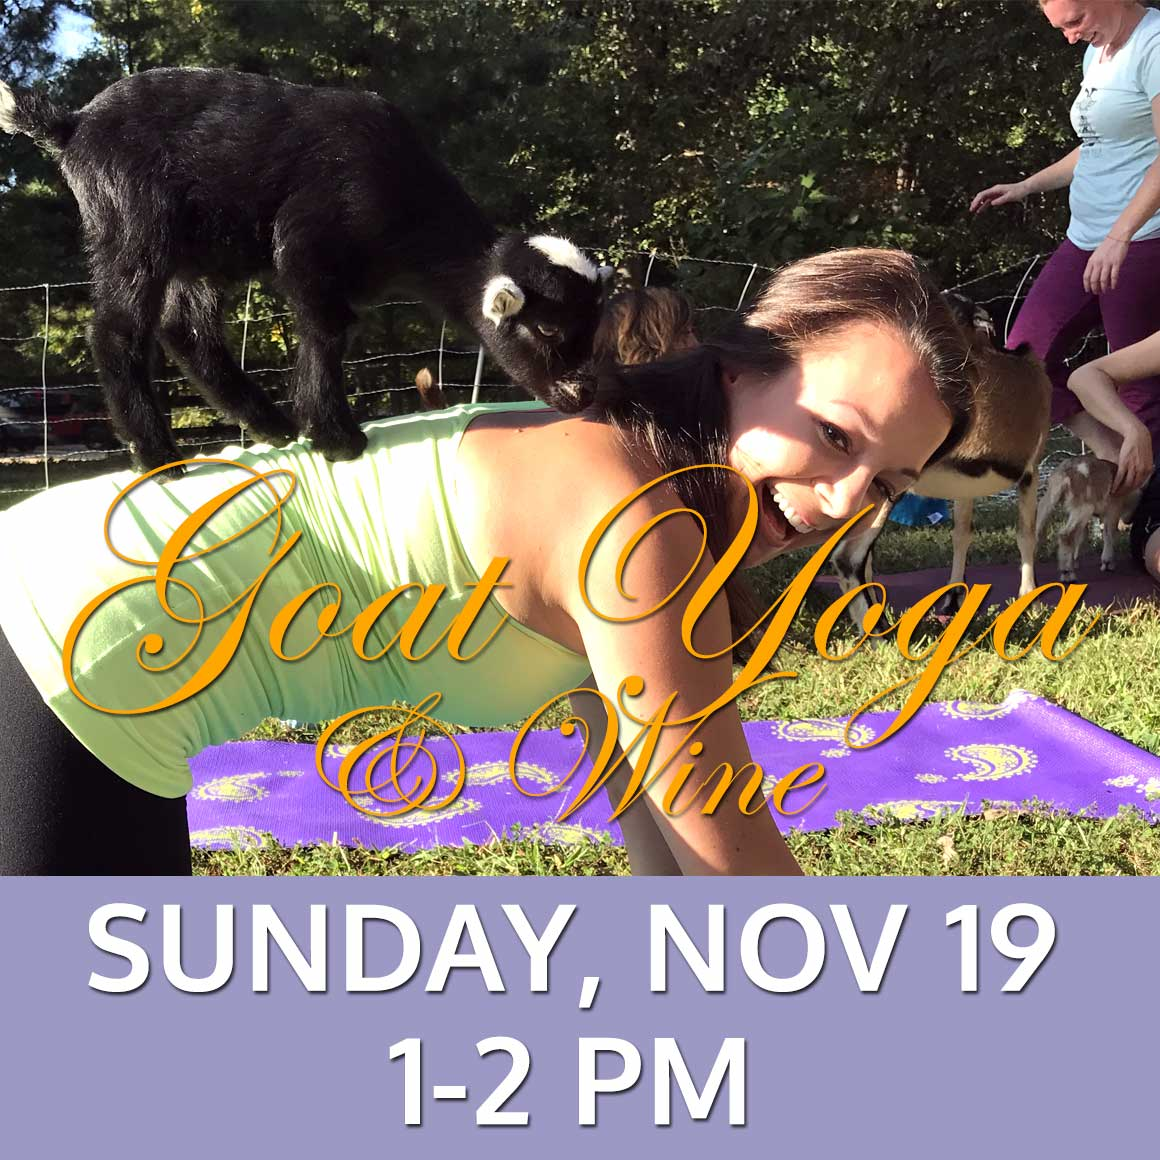 Goat Yoga & Wine - November 19, 2017